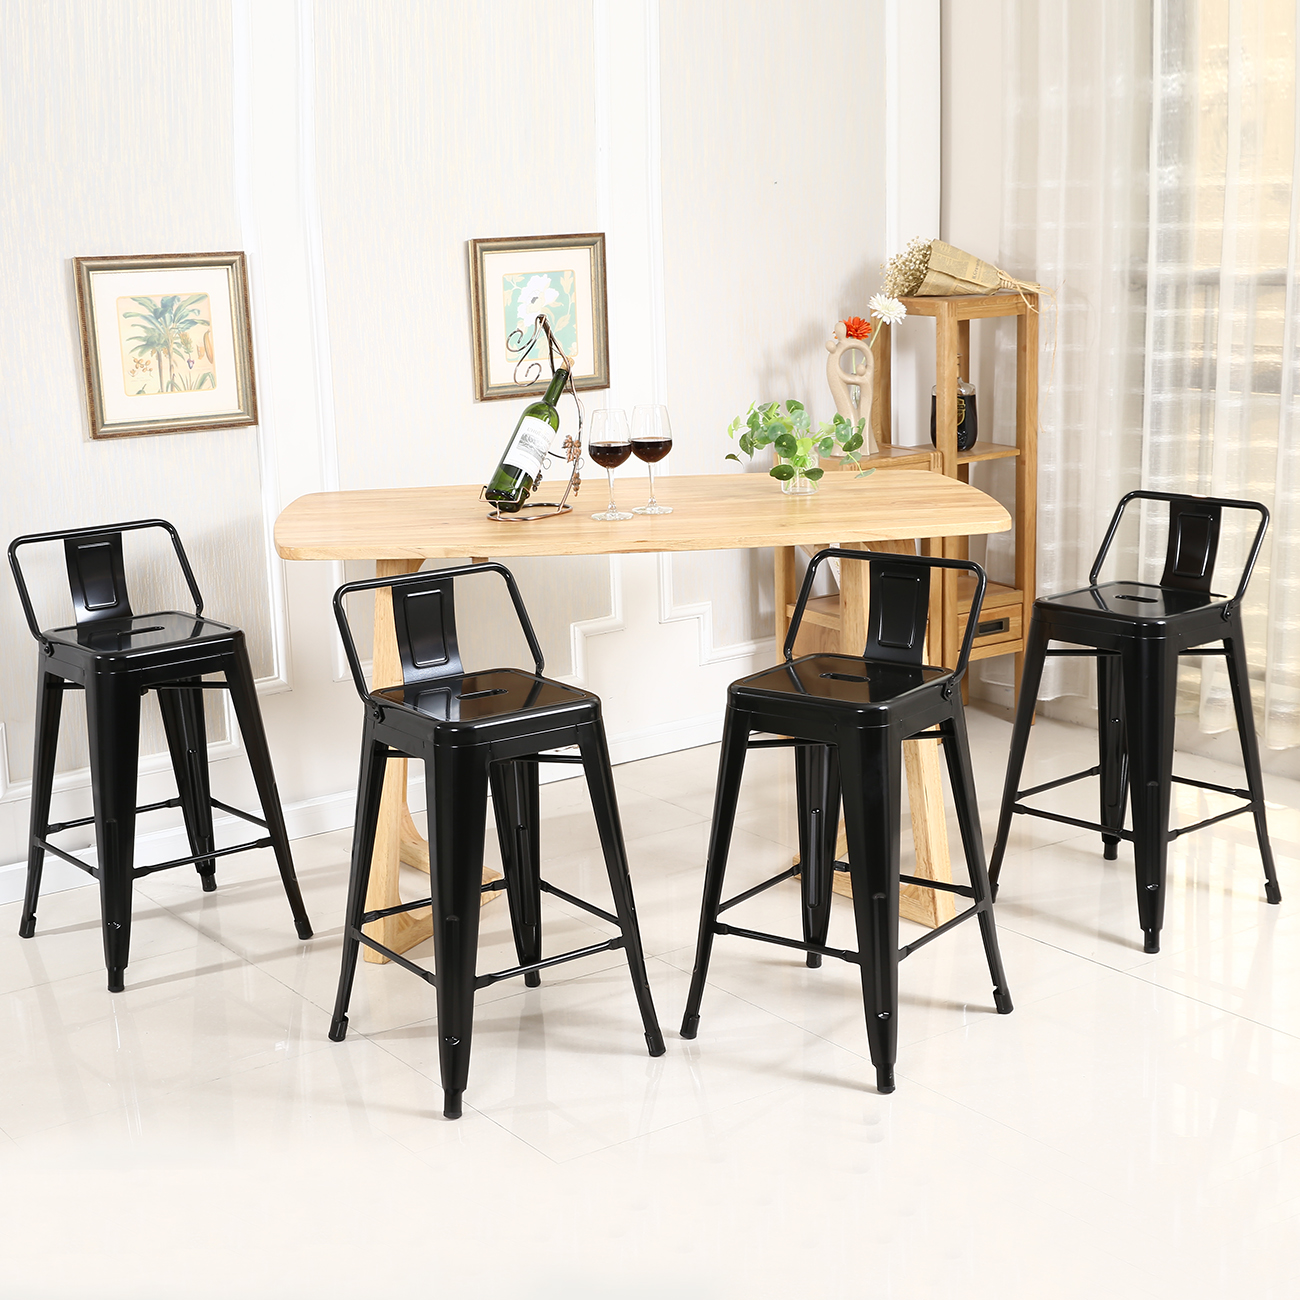 Metal Counter Height Chairs 24 39 39 High Black Steel Indoor Outdoor Counter Height Stool